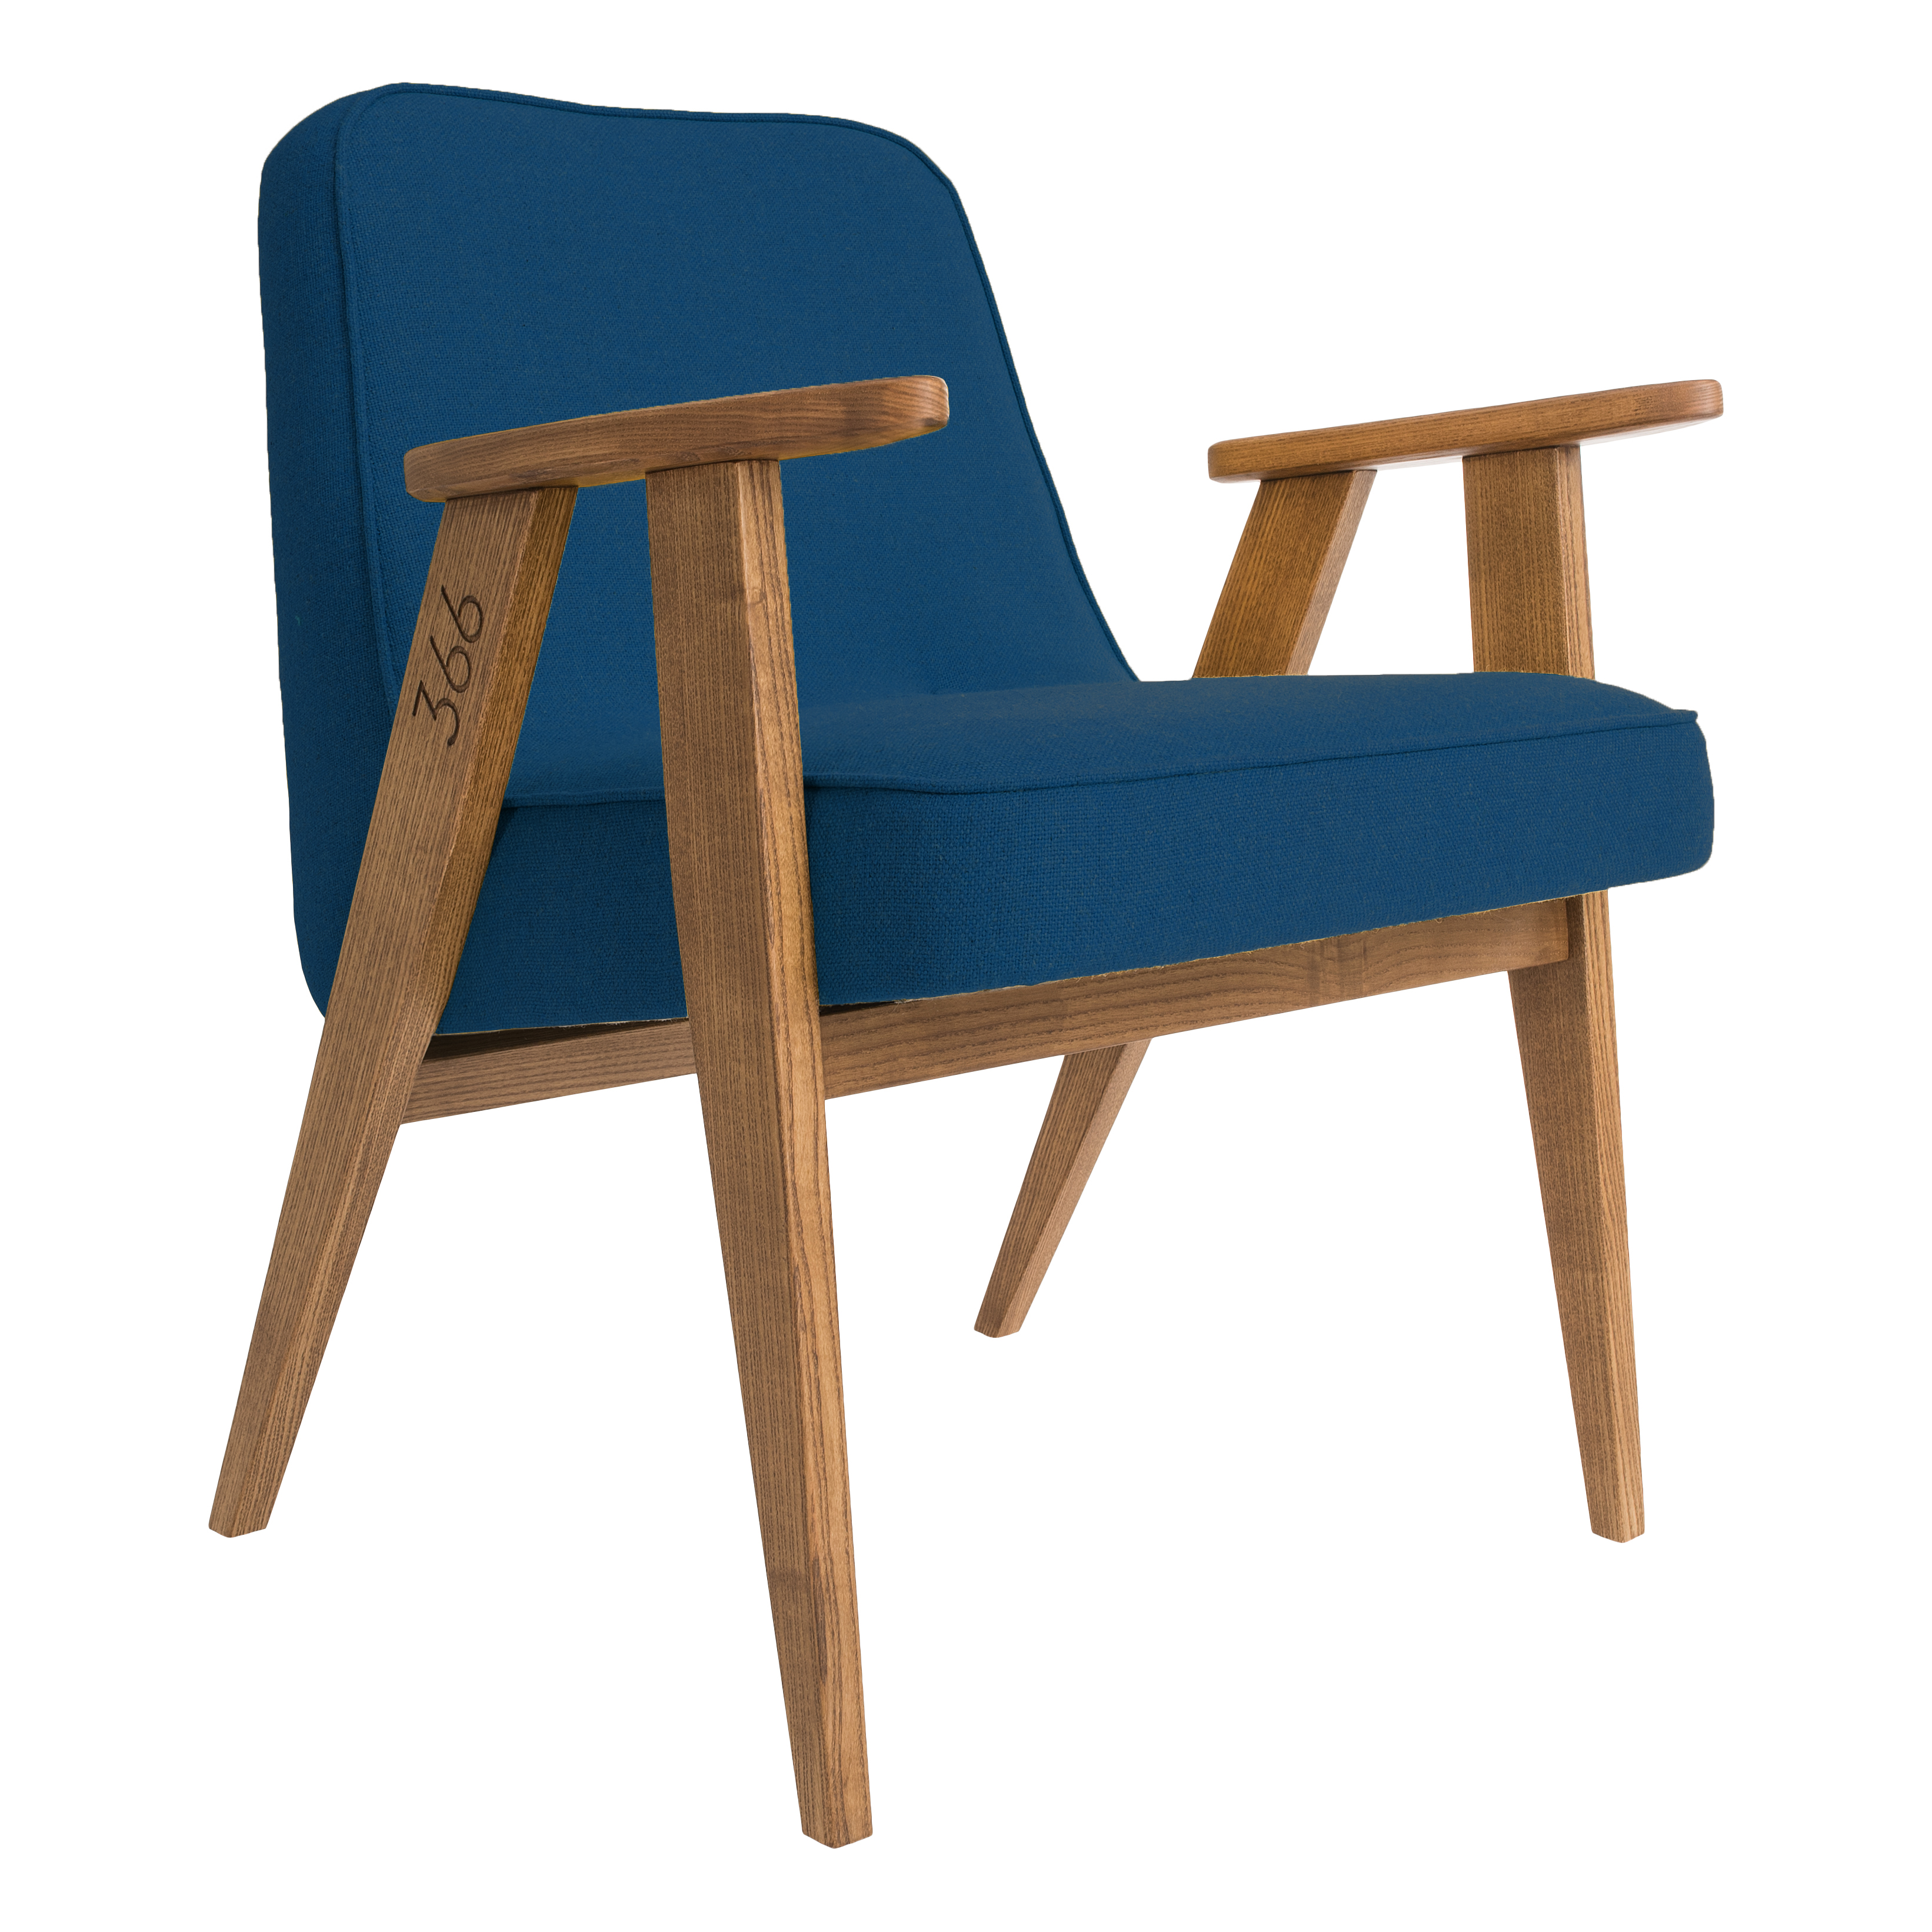 366_Concept_-_366_easy_chair_-_Wool_10_Blue_-_Oak